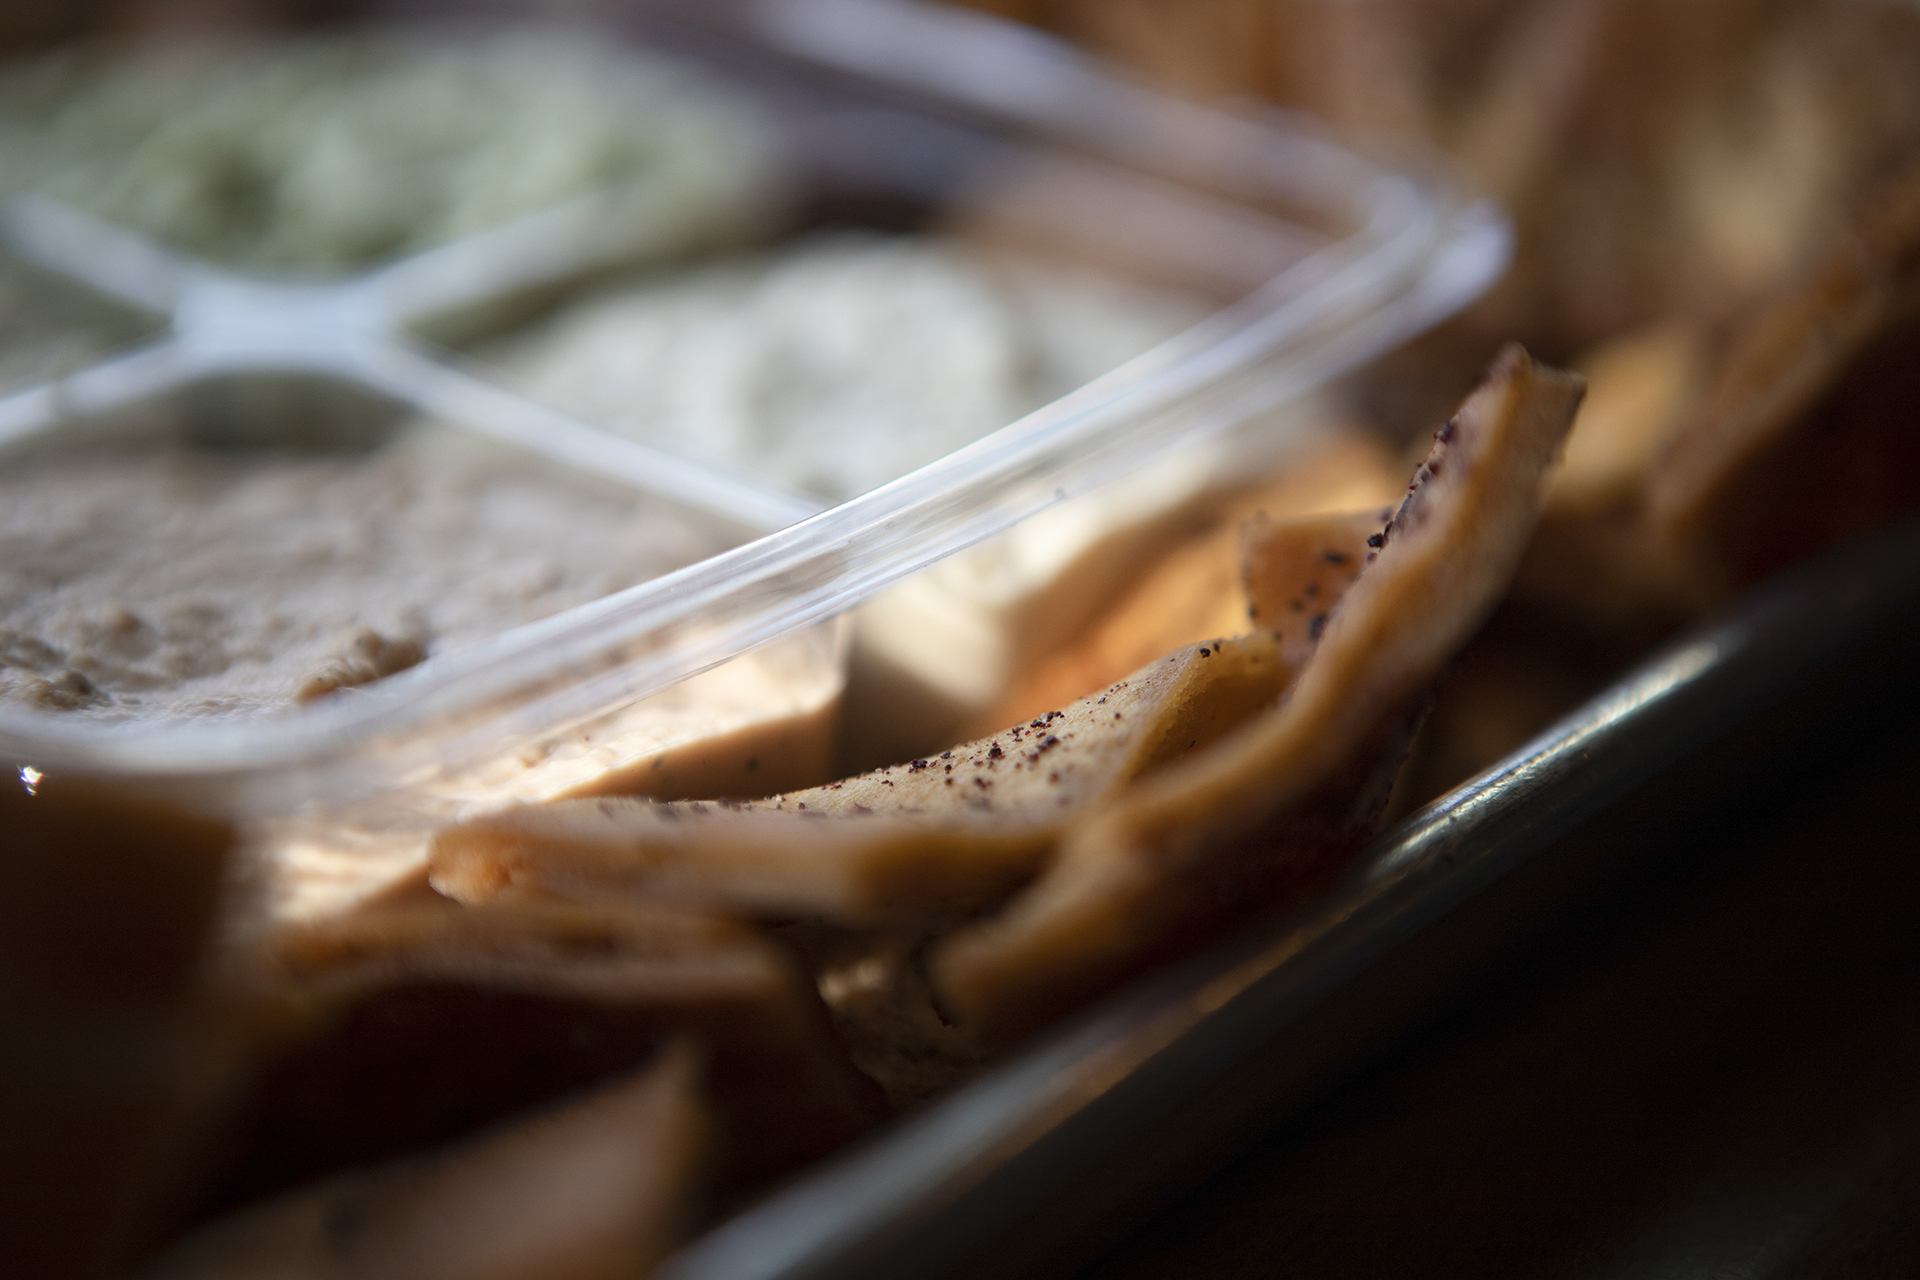 On a metallic tray Pita chips are pictured up close with a party pack filled to the brim with various hummus flavors blurred in the background.